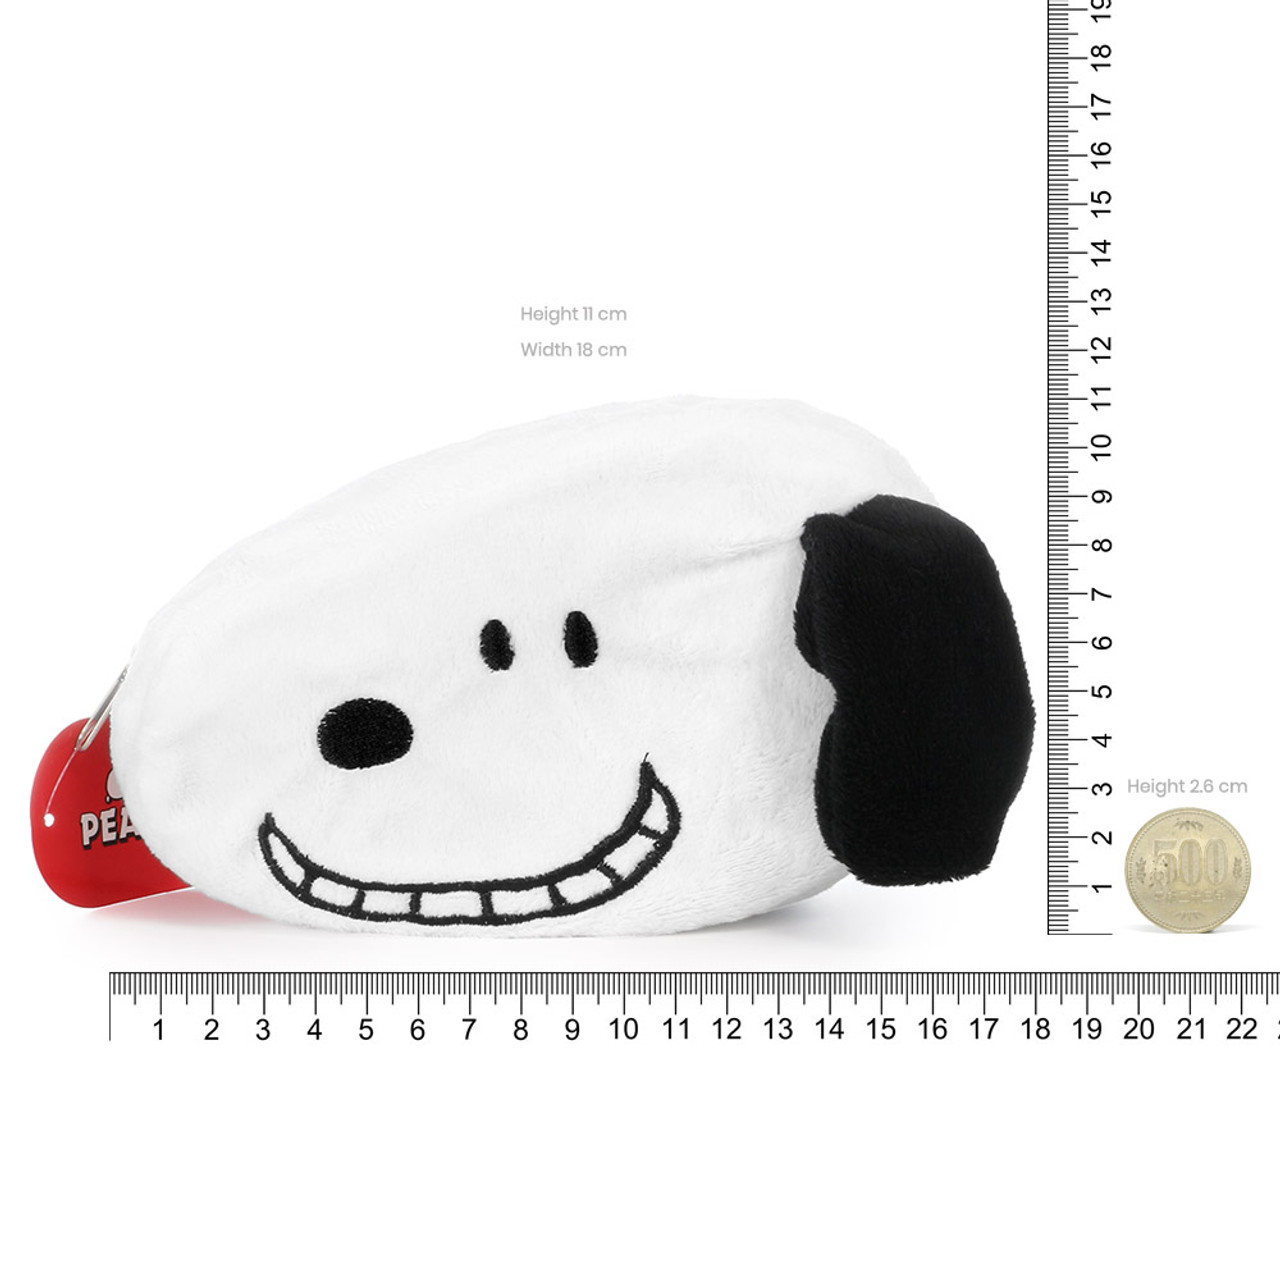 Peanuts Snoopy Collection Pl/üsch Snoopy 25 cm